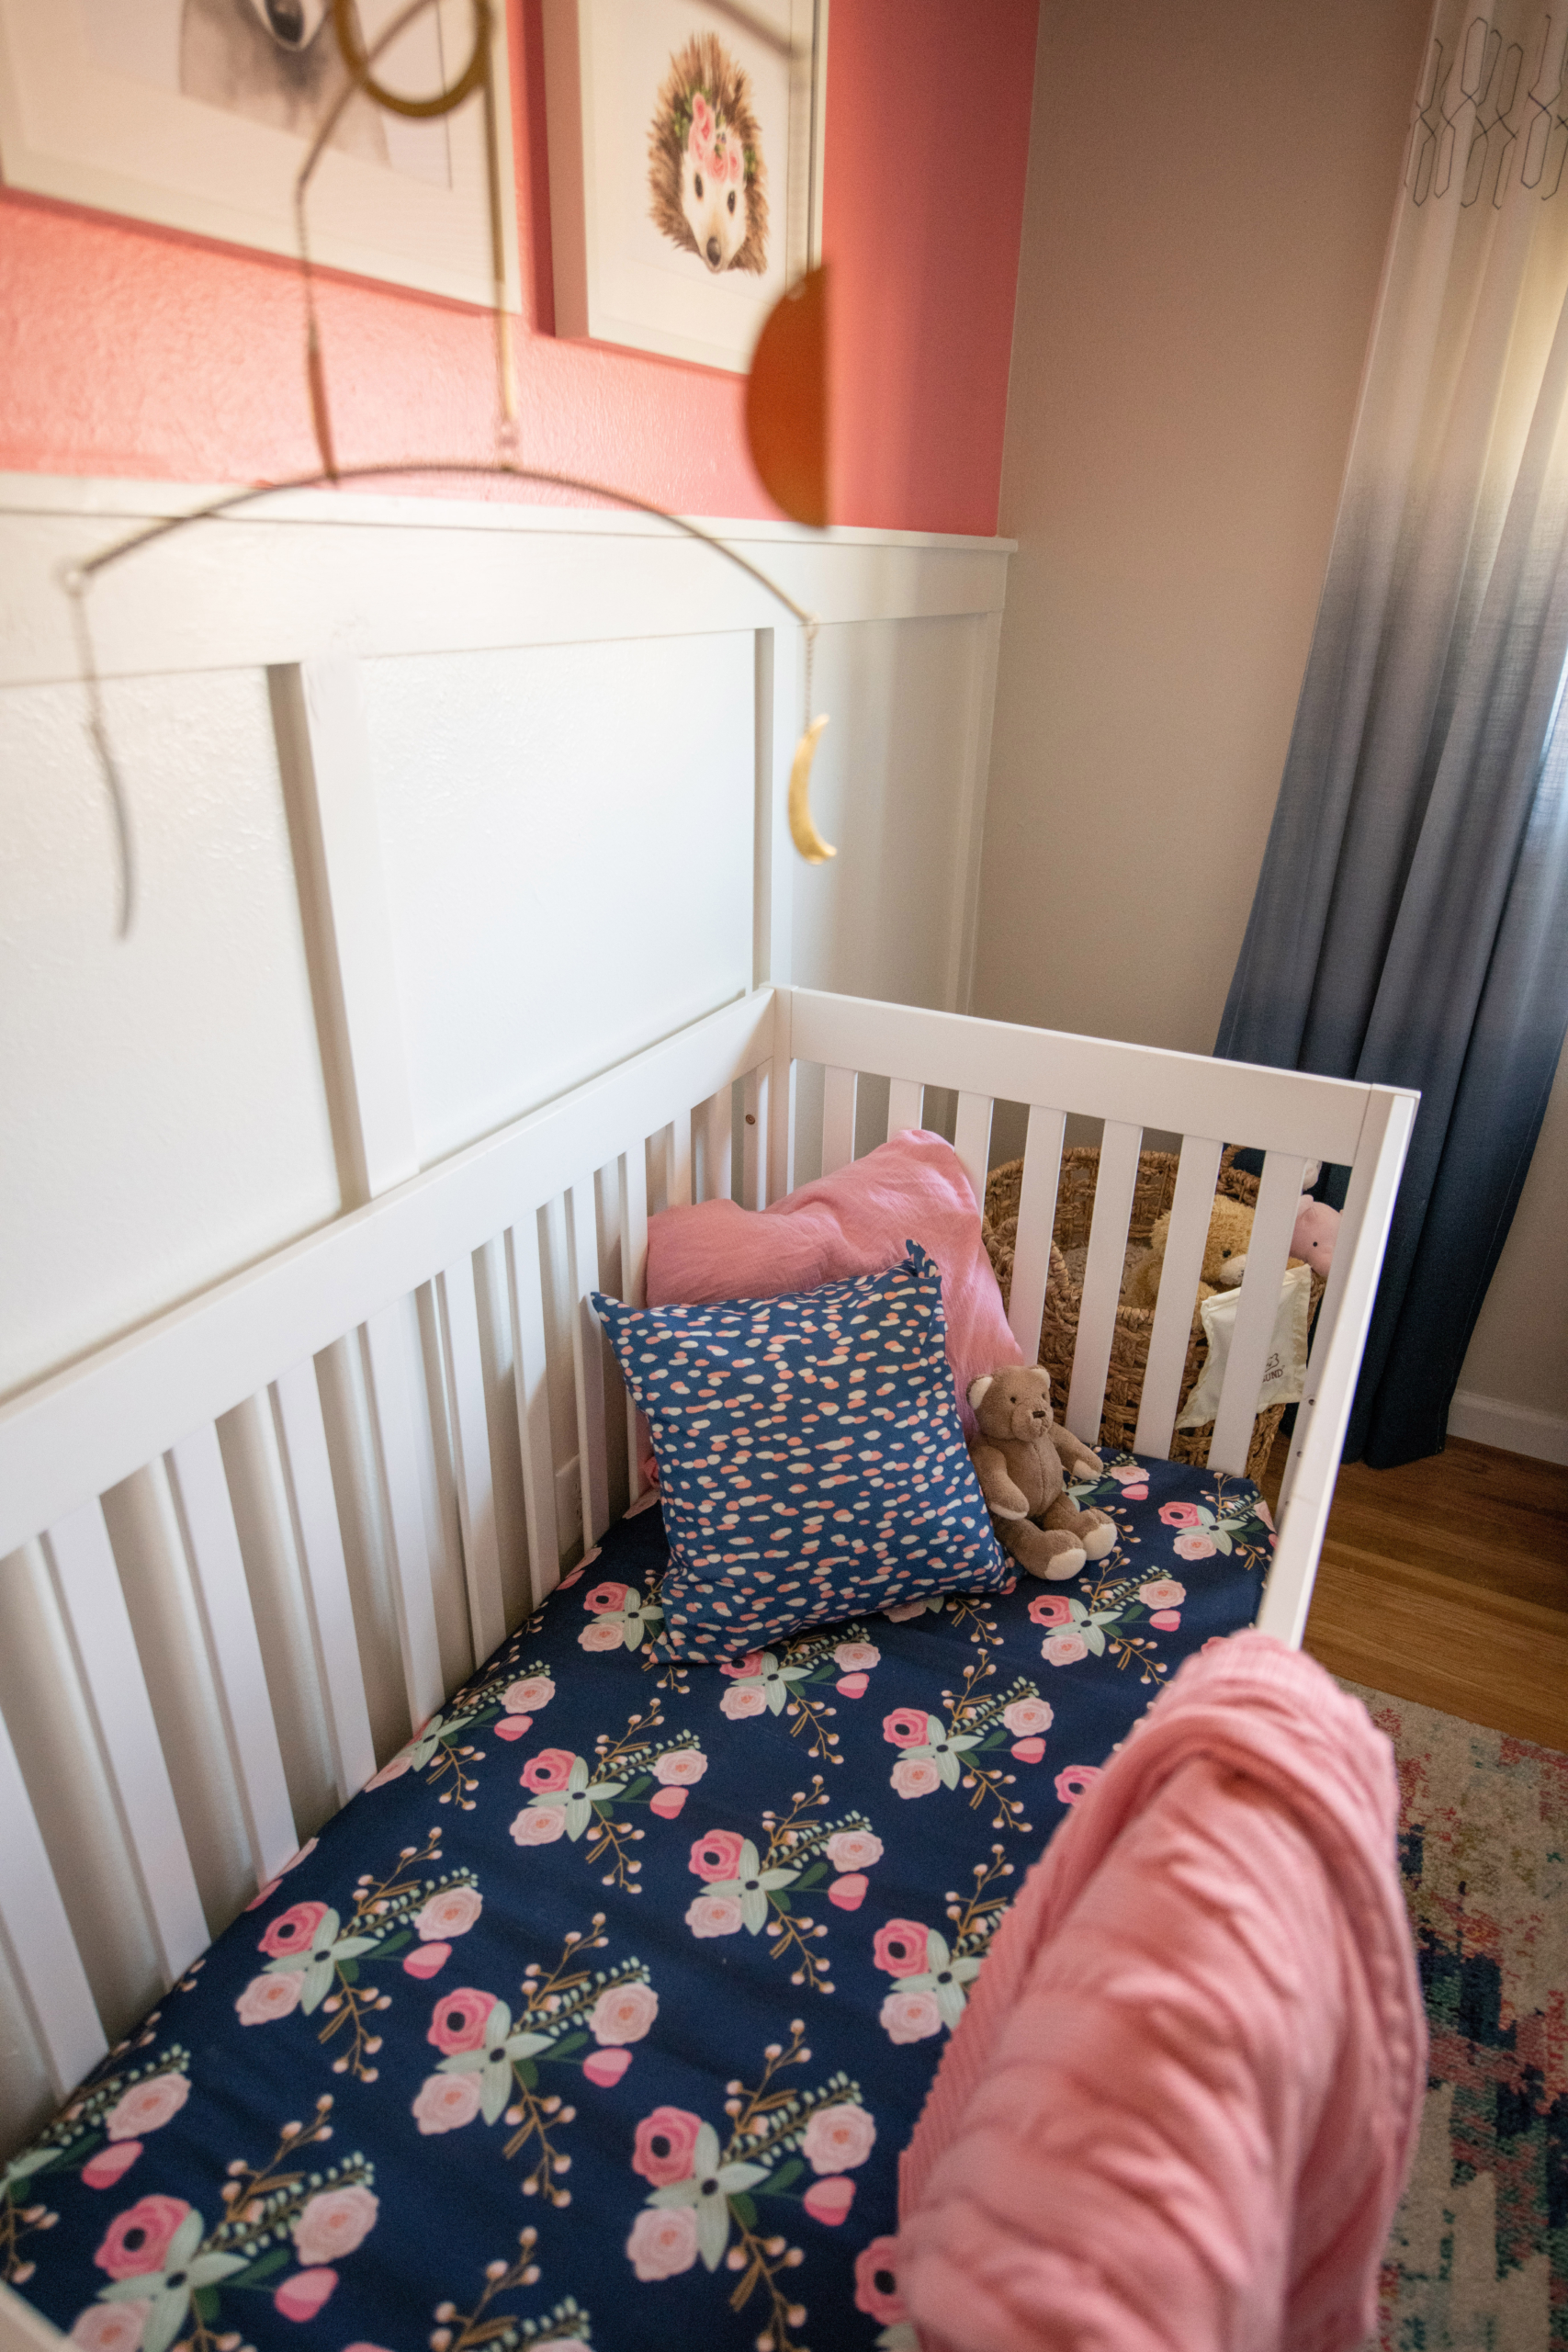 Wolf Nursery interior crib view with floral sheets